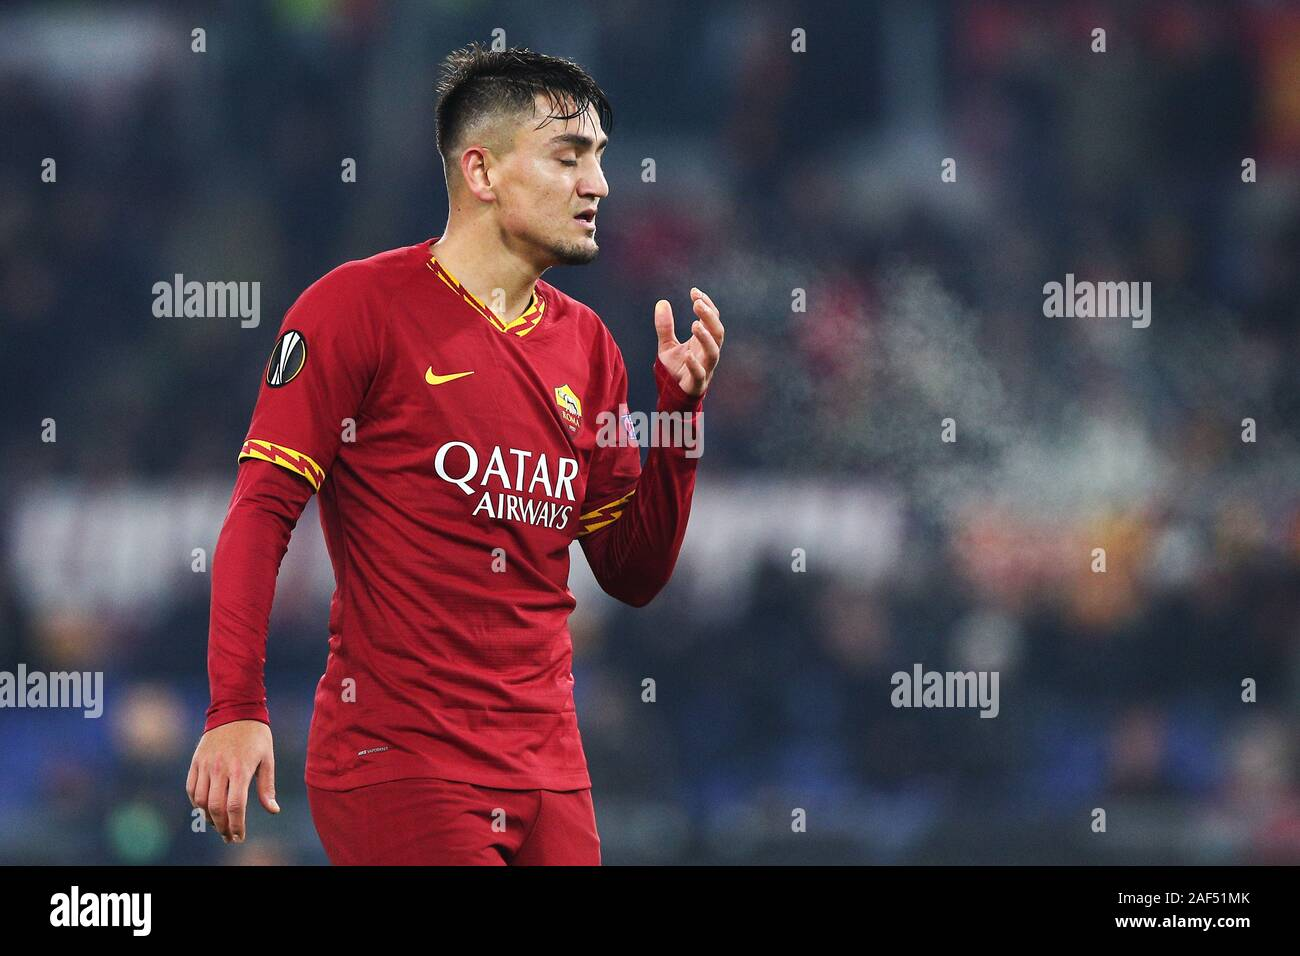 Cengiz Under of Roma reacts during the UEFA Europa League, Group J football match between AS Roma and Wolfsberg AC on December 12, 2019 at Stadio Olimpico in Rome, Italy - Photo Federico Proietti/ESPA-Images Stock Photo